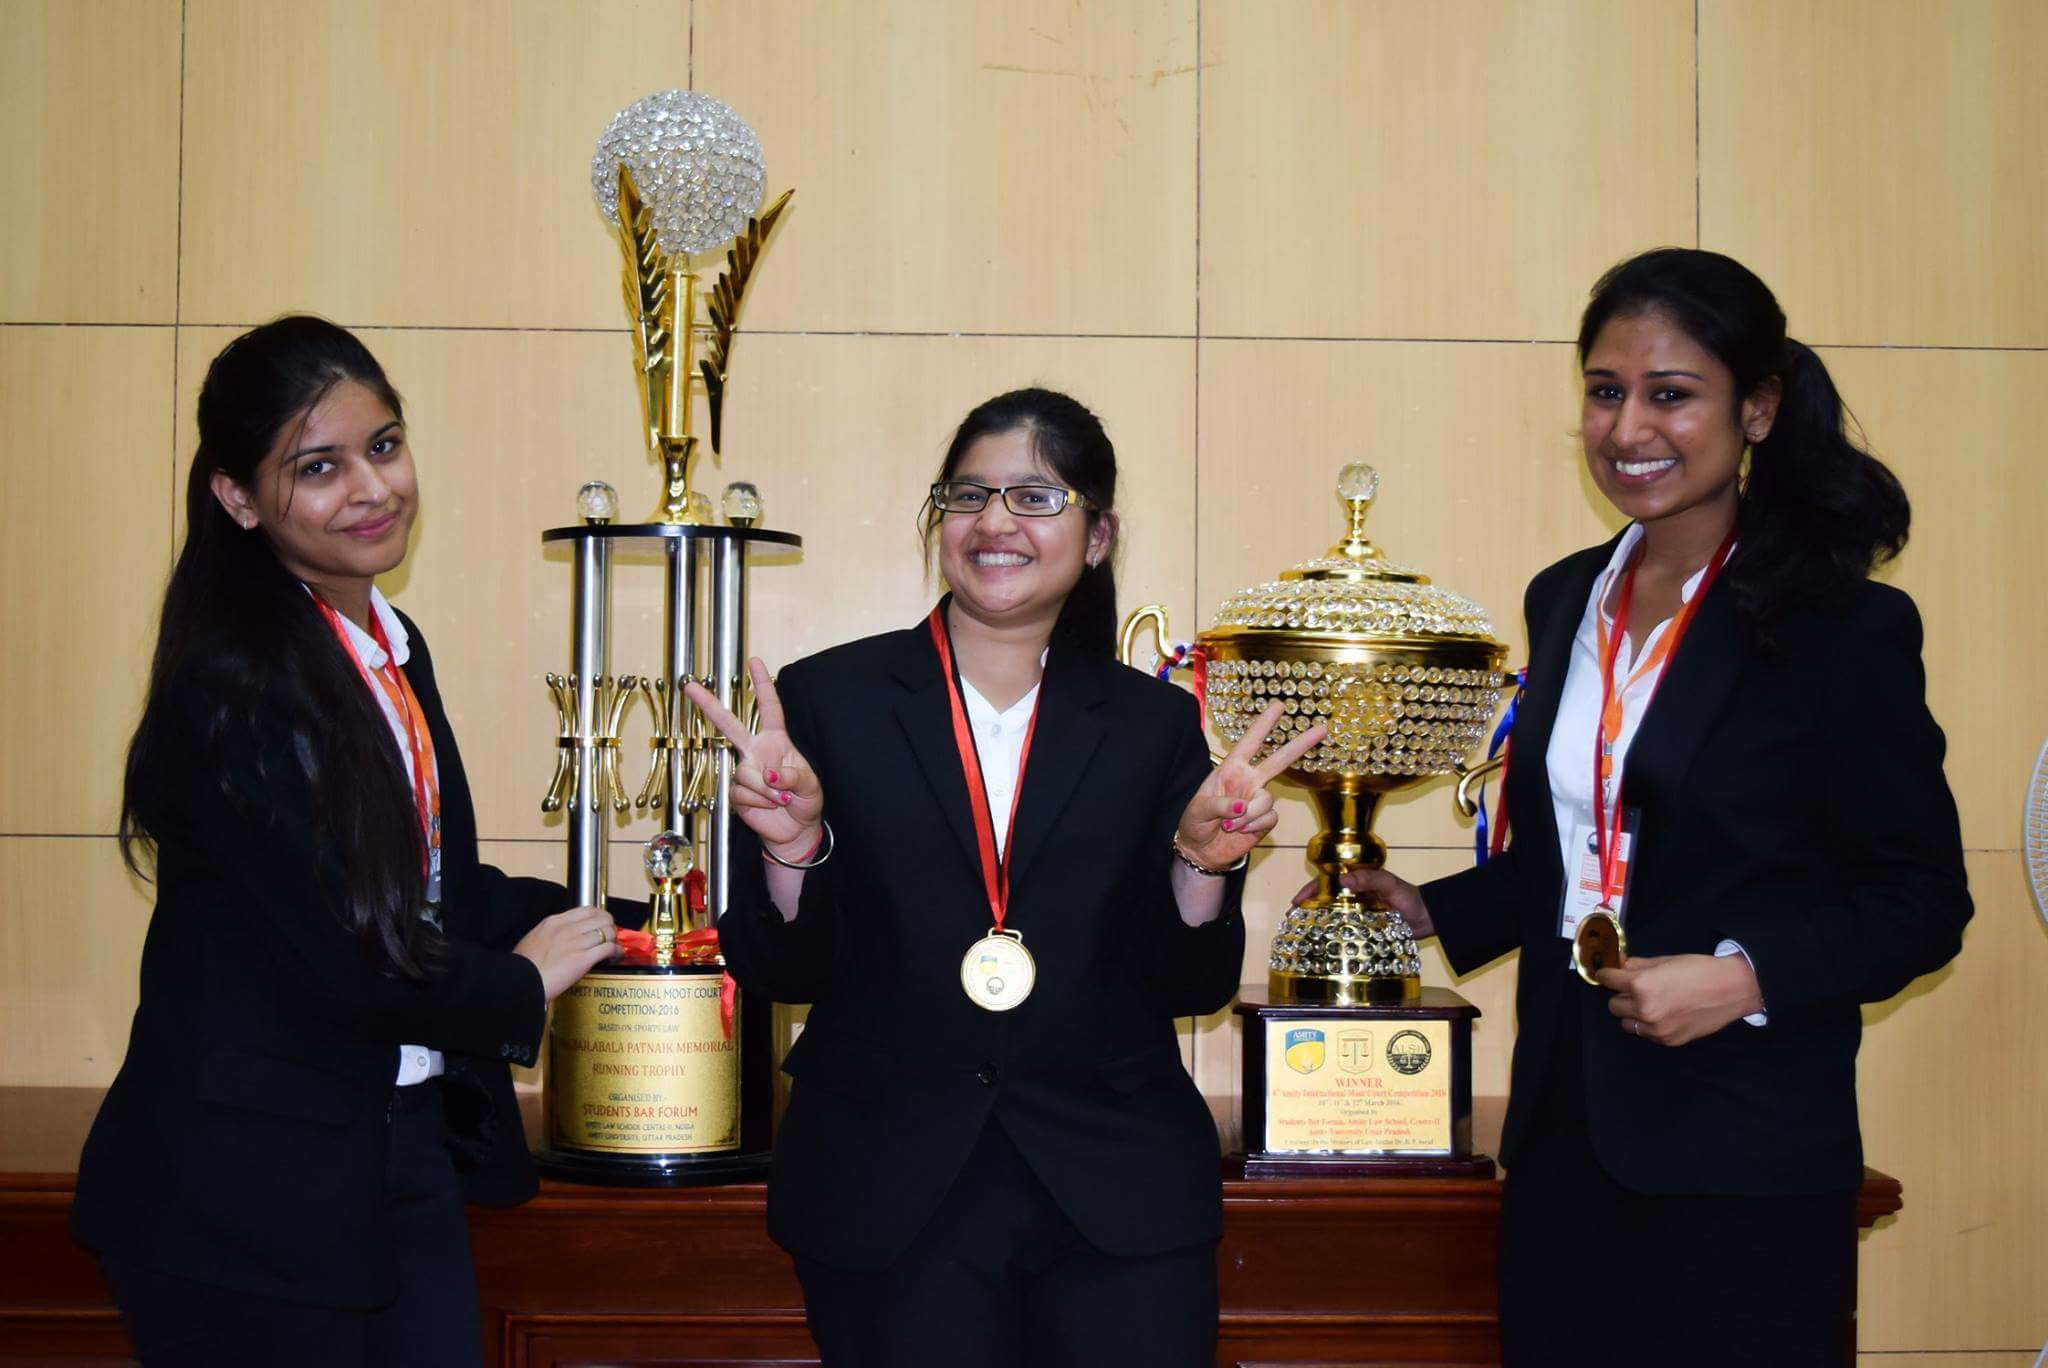 Interview: Winning Team [RGNUL Patiala] of 4th Amity International Moot